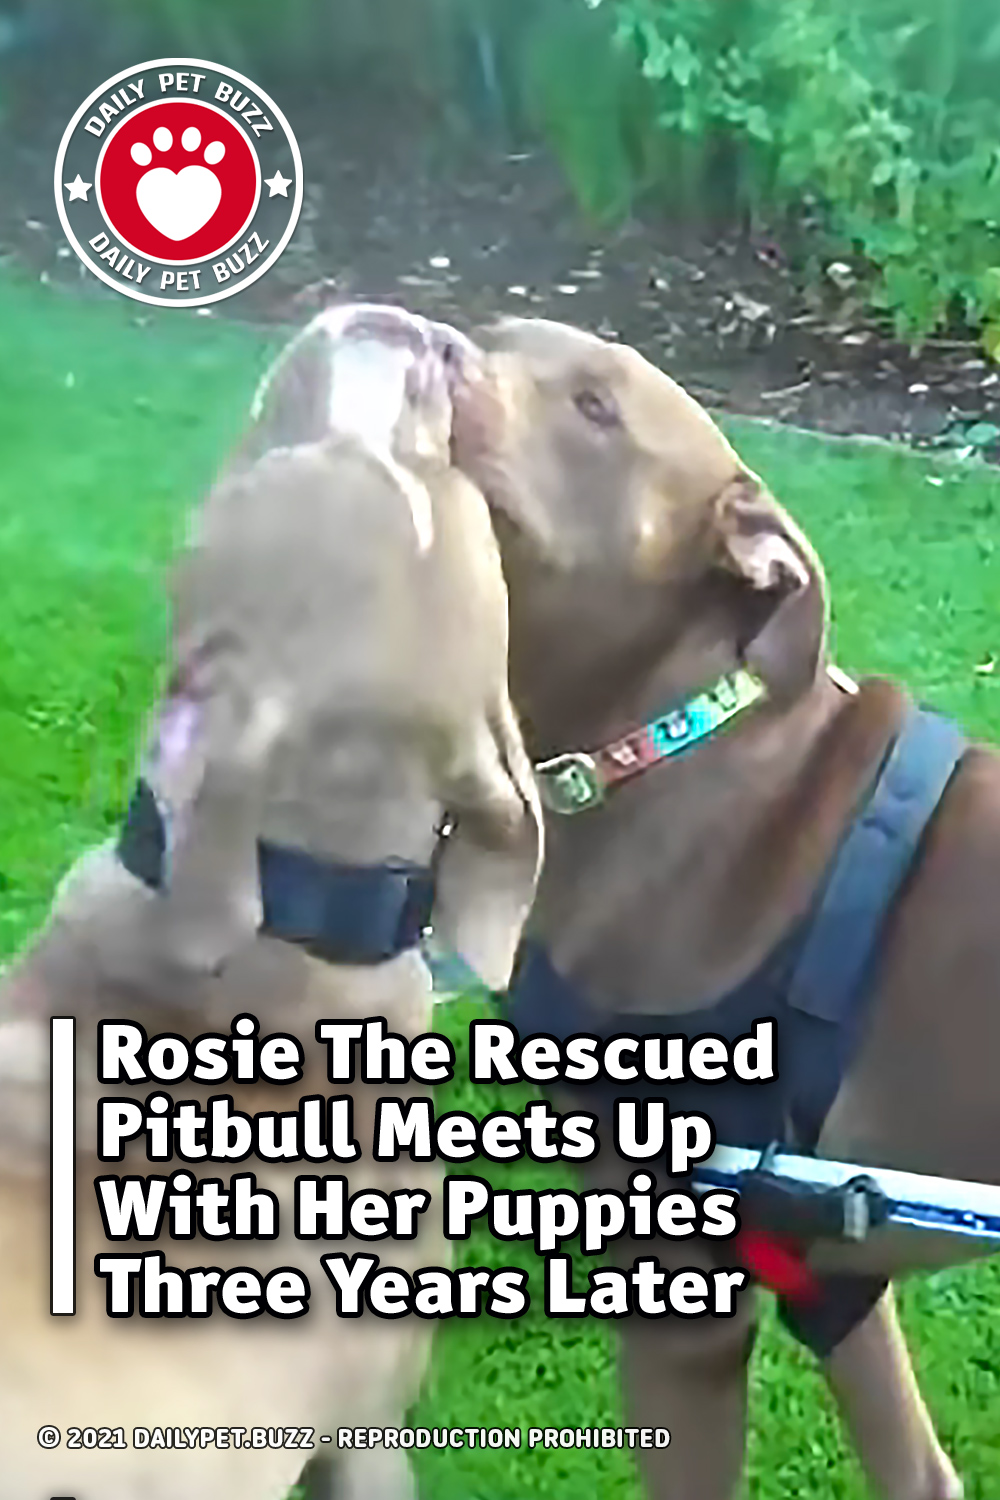 Rosie The Rescued Pitbull Meets Up With Her Puppies Three Years Later